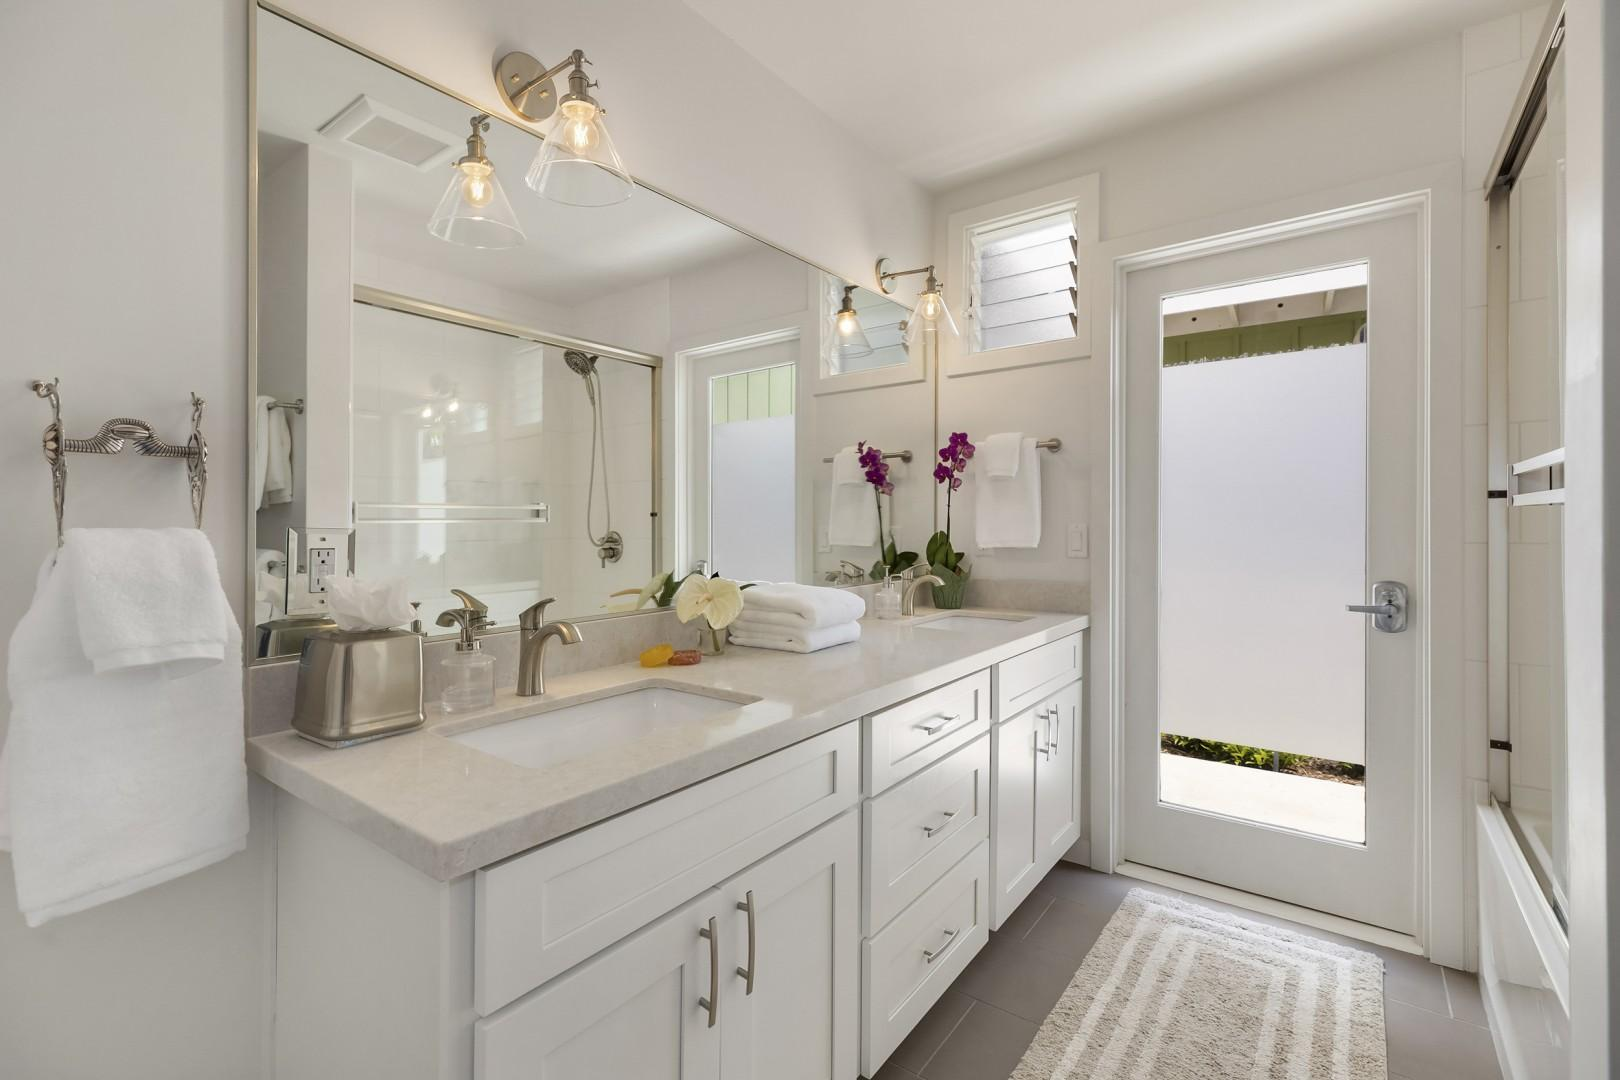 Bright Hallway Bathroom, with full size bathtub and double vanity. Opens to Outdoor Shower.